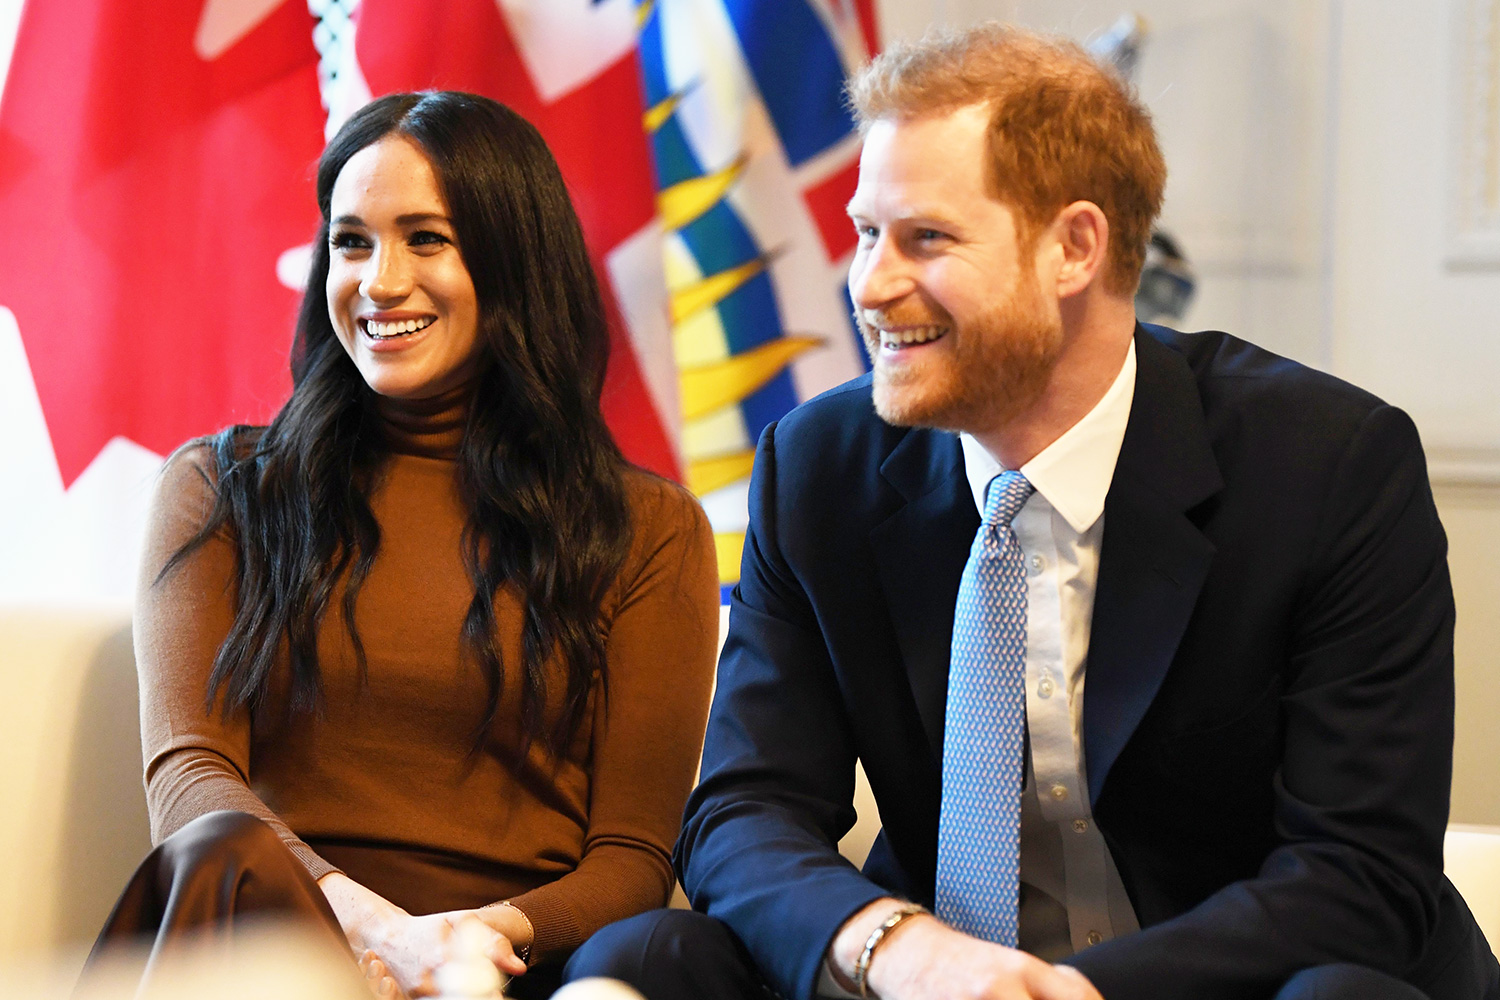 """On Friday morning in a hospital in Santa Barbara, California, Prince Harry and Meghan Markle welcomed their second child, Lilibet """"Lili"""" Diana Mountbatten-Windsor."""